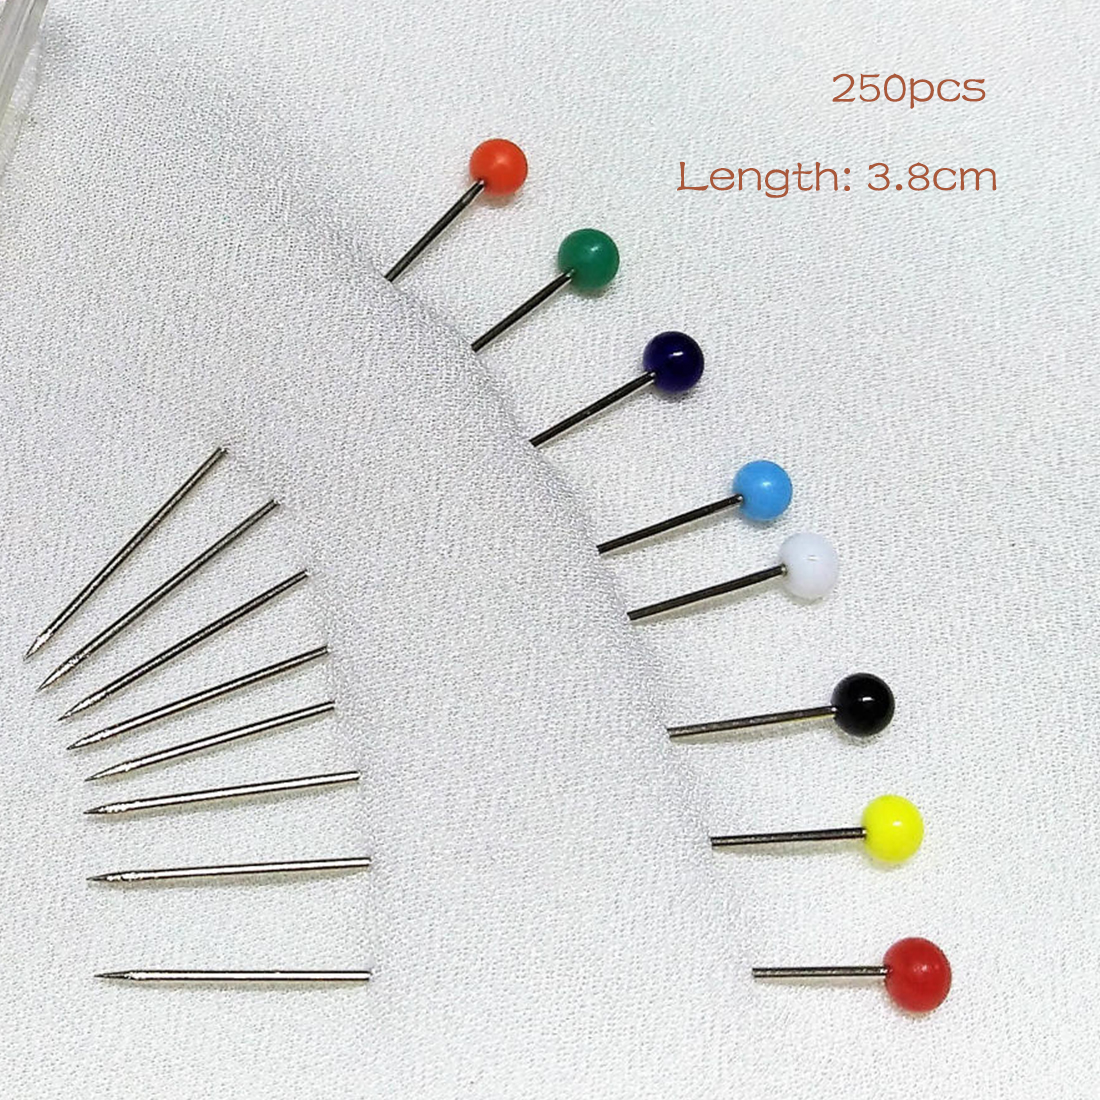 new 250pcs glass pearlized head pins multicolor white dressmaking sewing pin for diy sewing